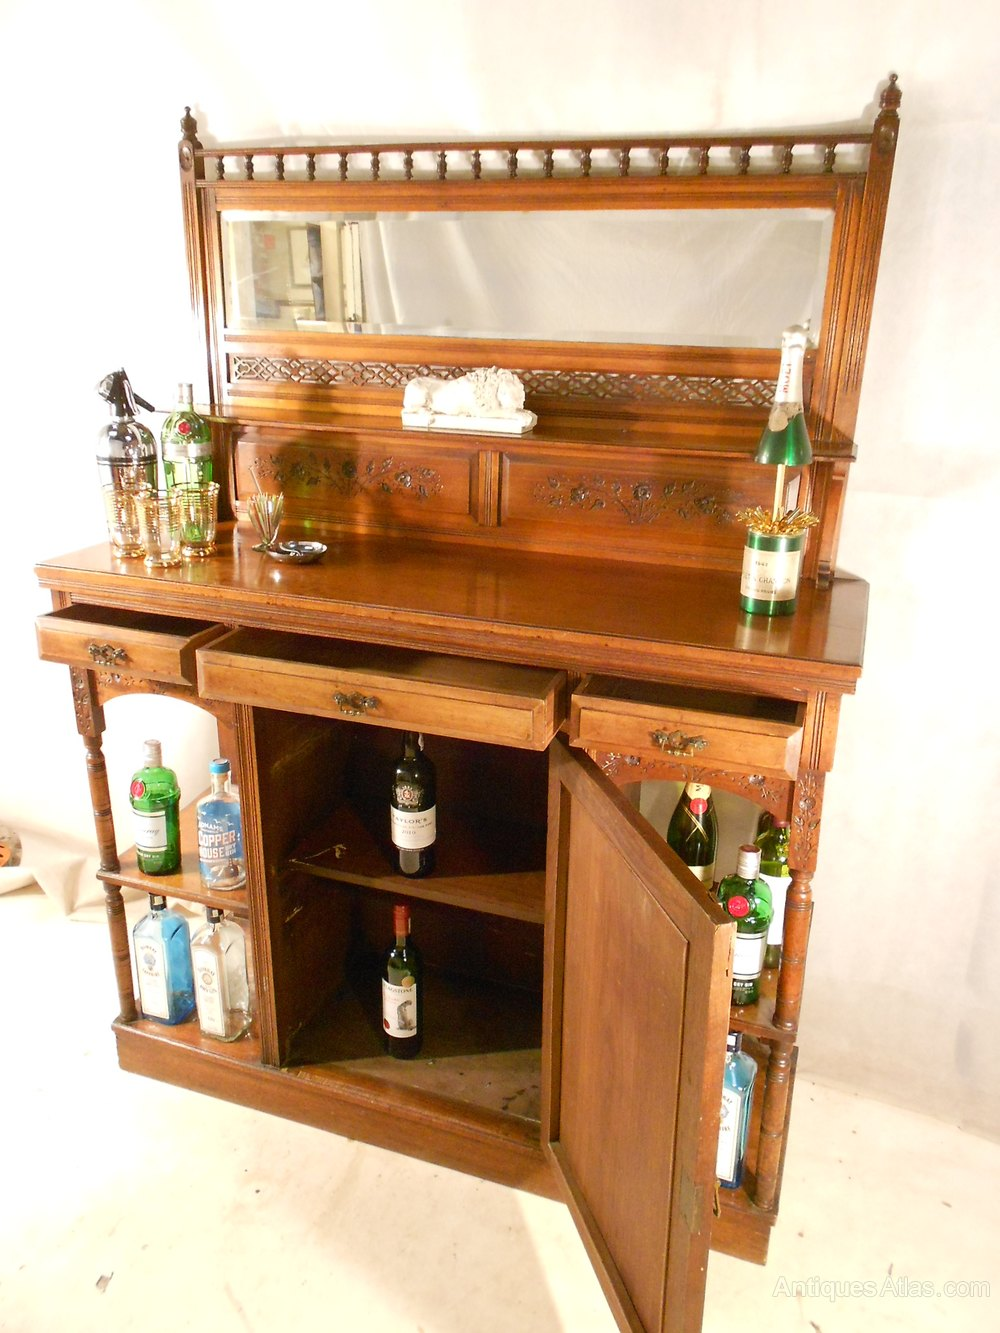 ... Antique Drinks Cabinets ... - Antique Victorian Drinks Cabinet C1880-1900 - Antiques Atlas